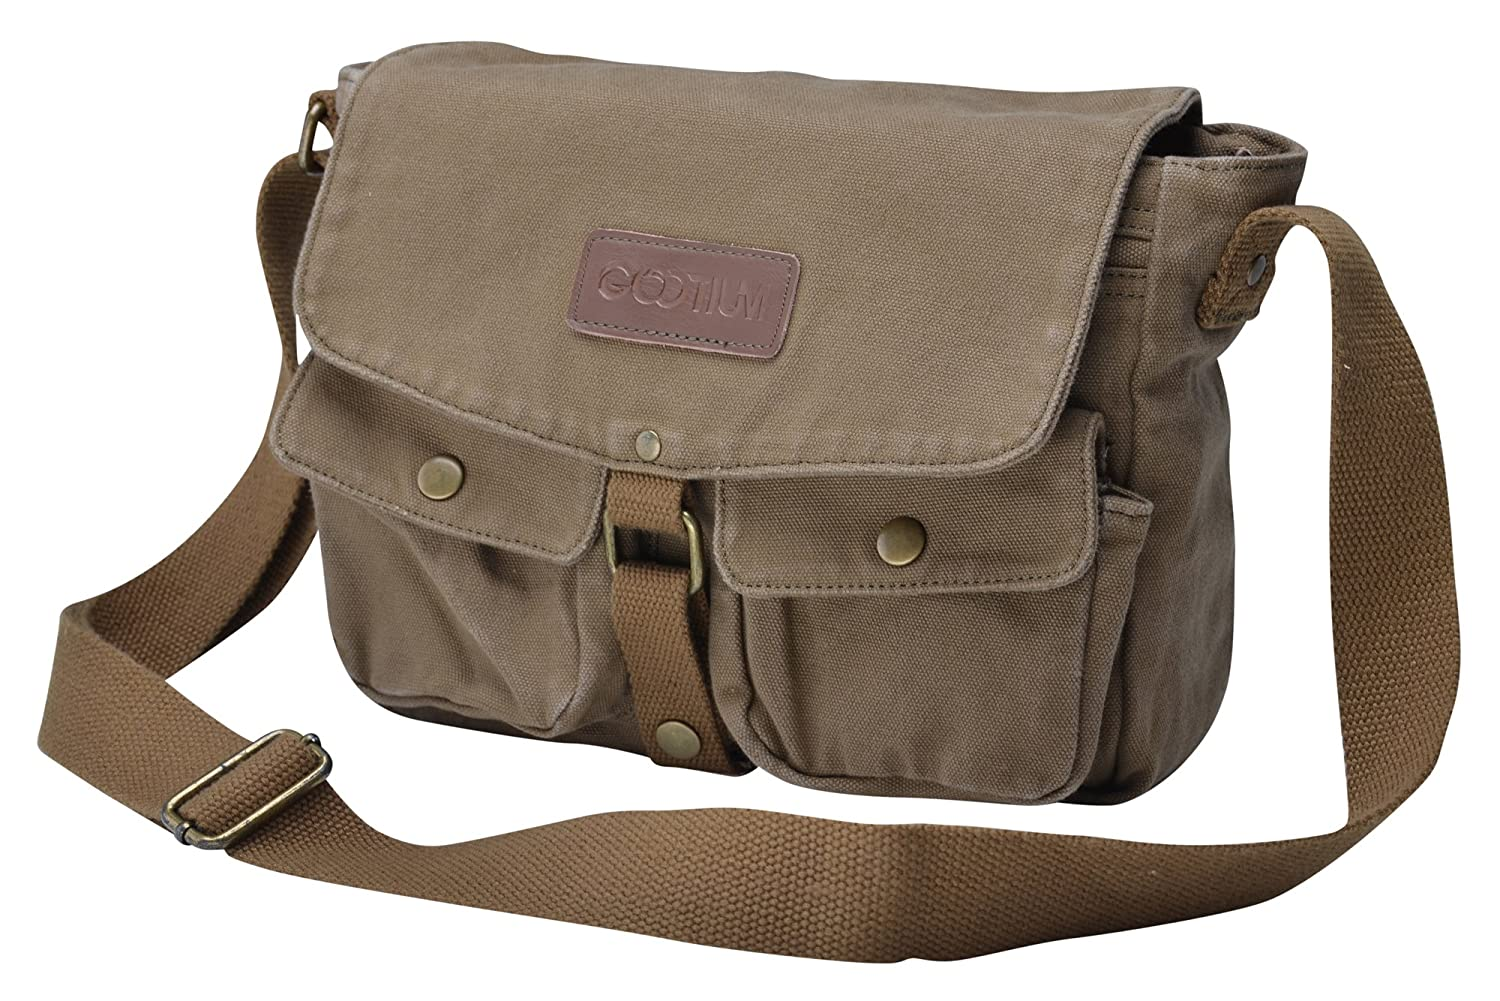 0fa25991b3 Gootium Vintage Canvas Messenger Bag Men s Crossbody Bag